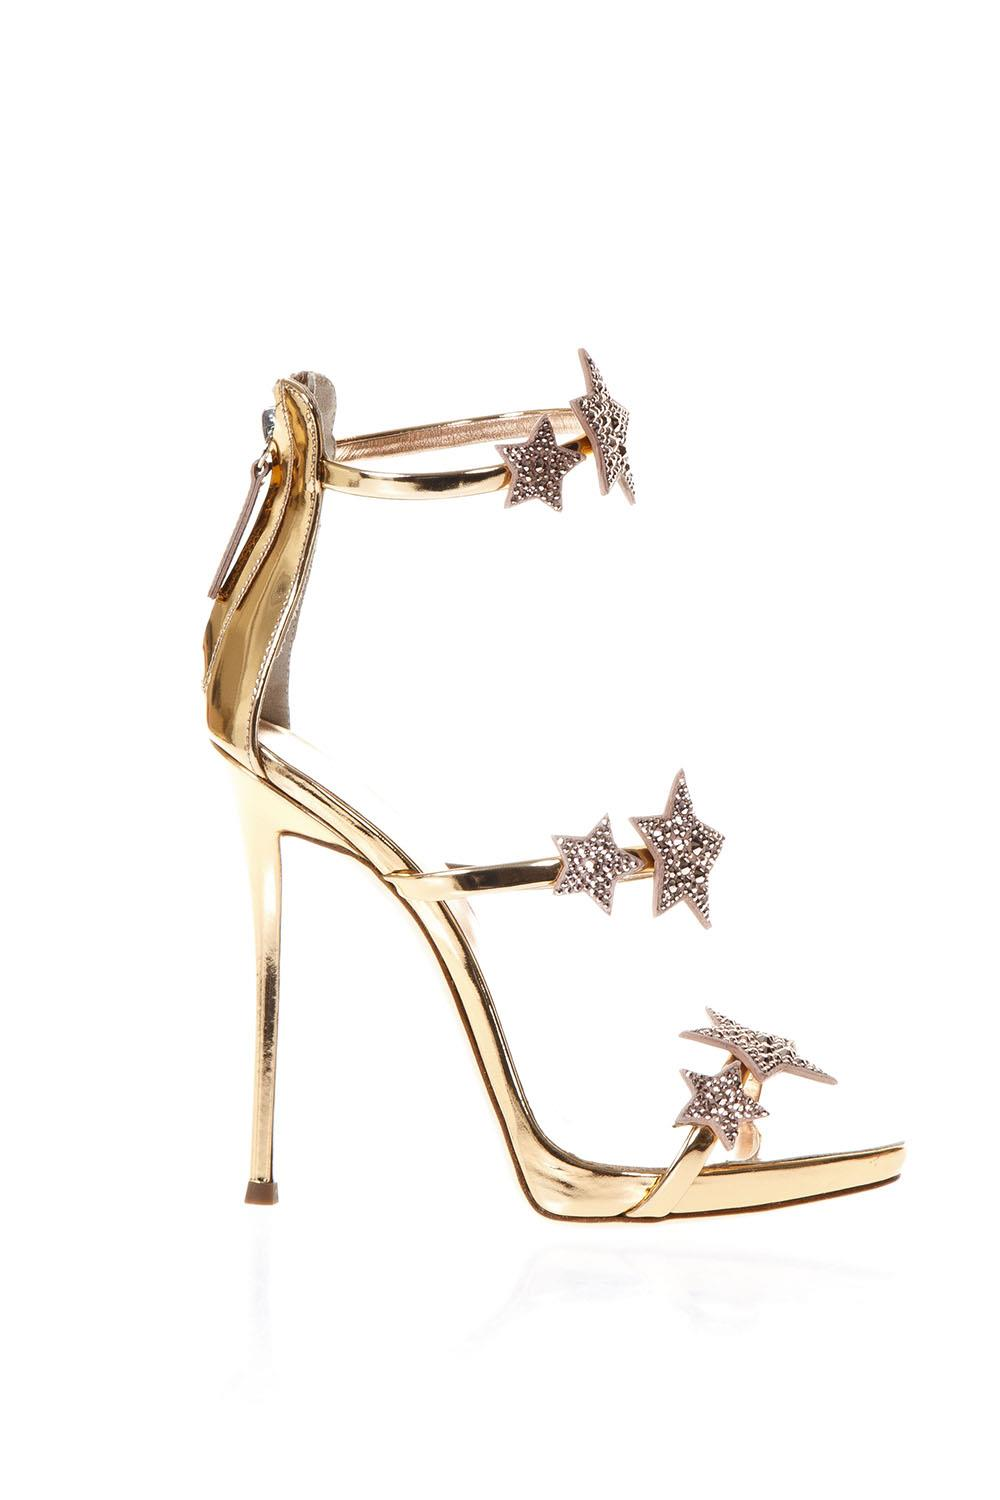 HARMONY STAR GOLD METALLIC LEATHER SANDALS SS 2018 - GIUSEPPE ZANOTTI -  Boutique Galiano 1b0501205